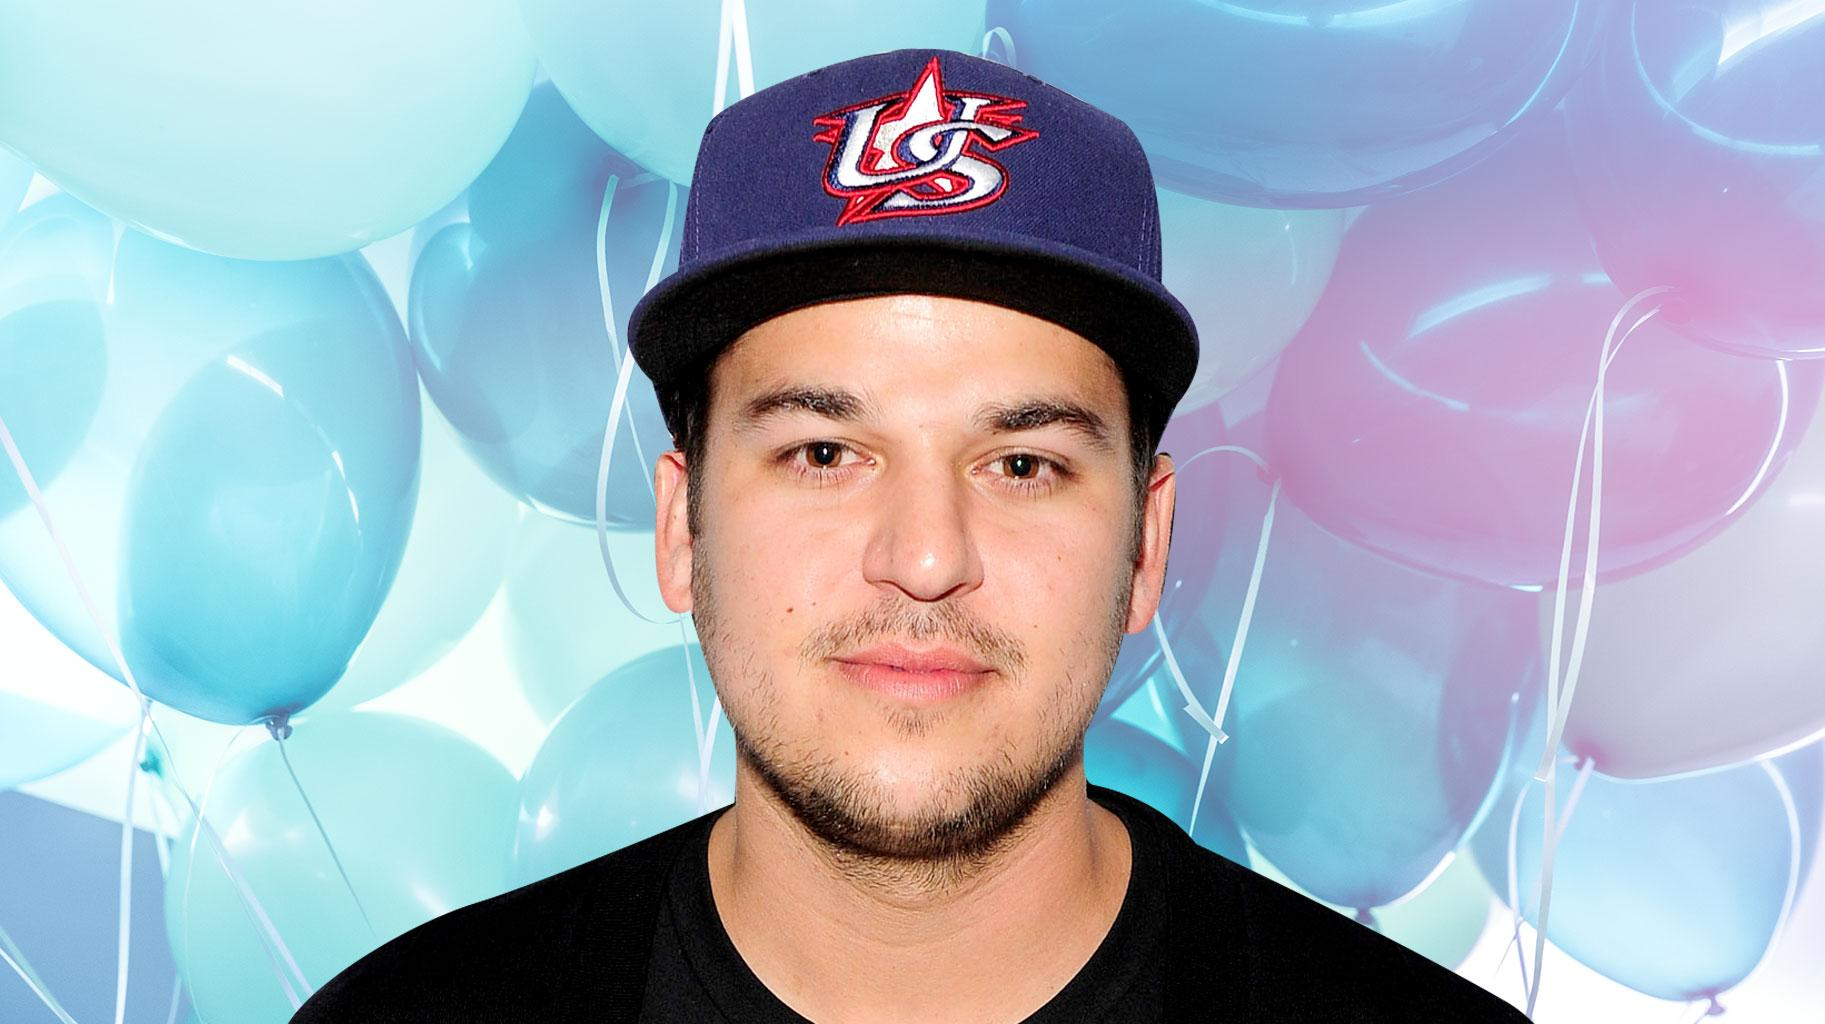 Rob Kardashian Makes Fans Excited By Popping Up On The 'Gram - He's Also Filmed At A Dinner Date! See The Clips